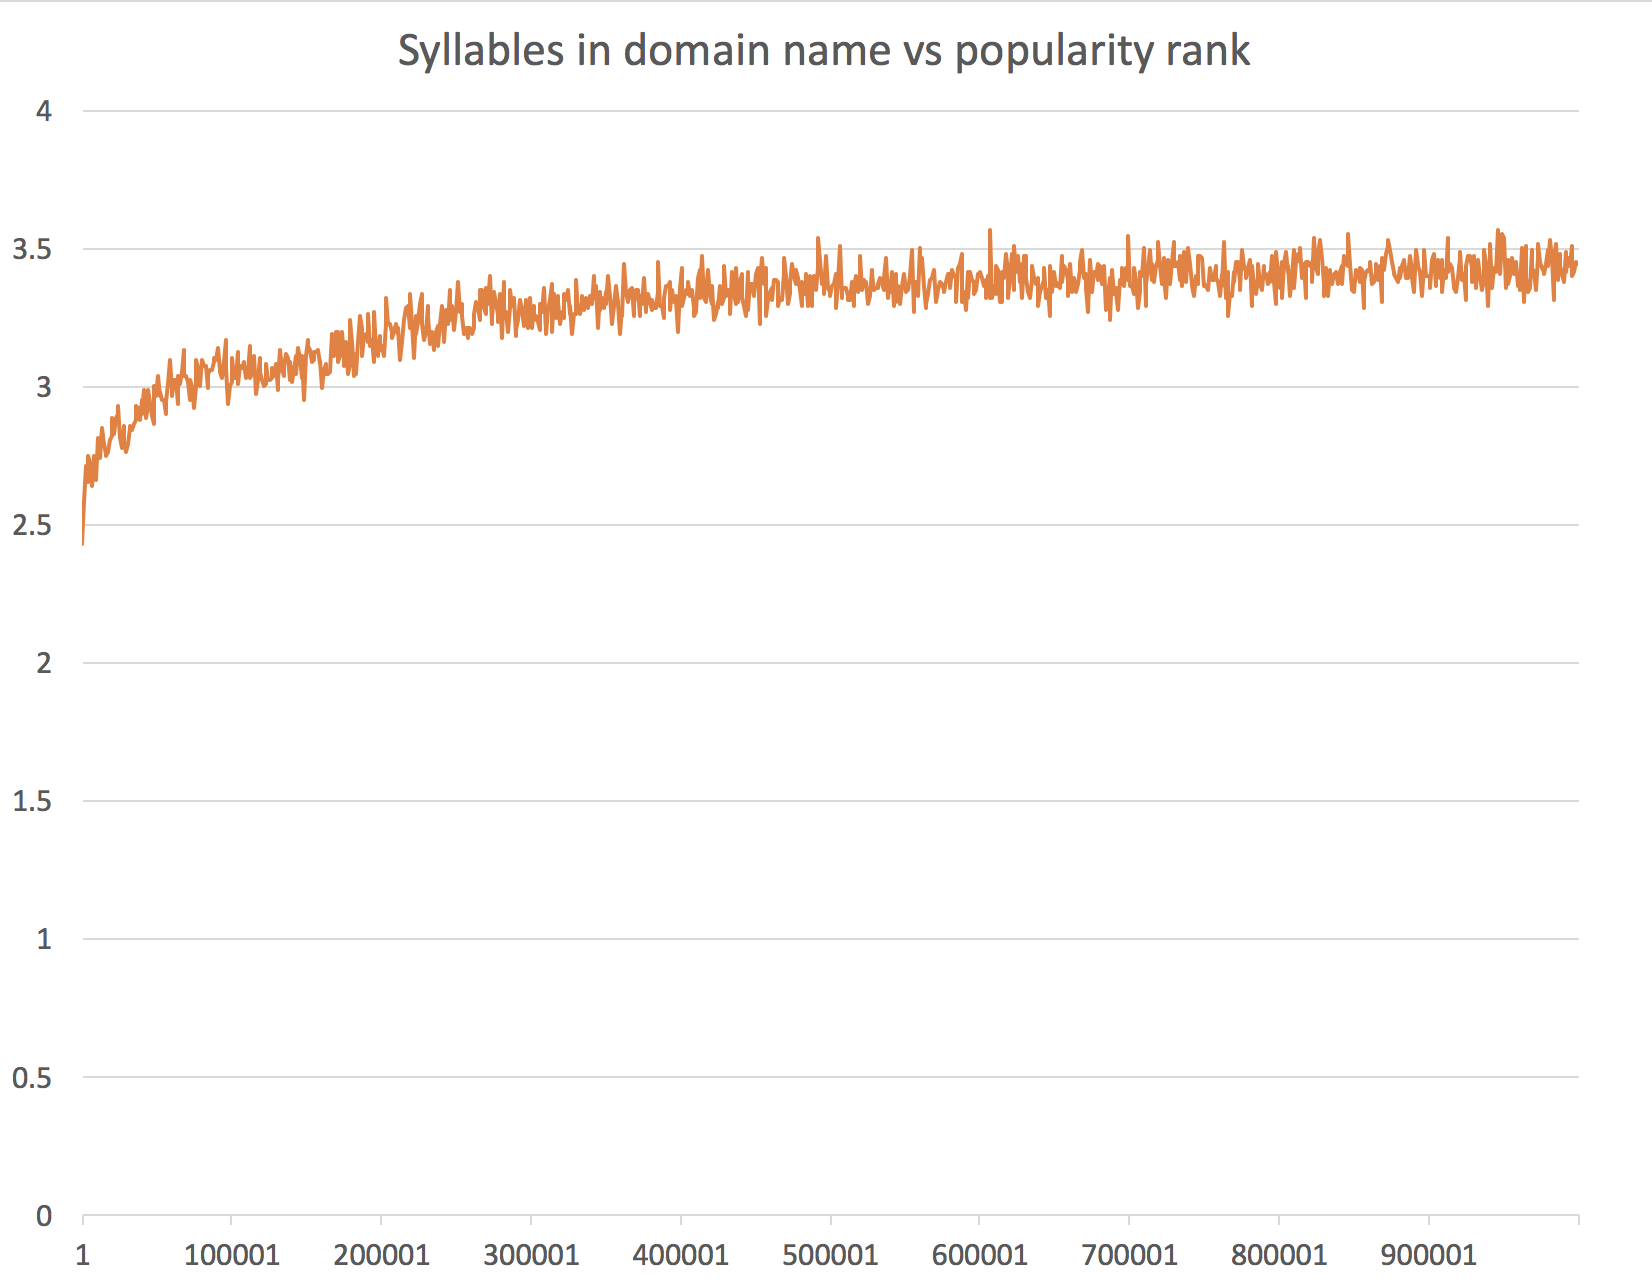 Syllables in domain name vs popularity